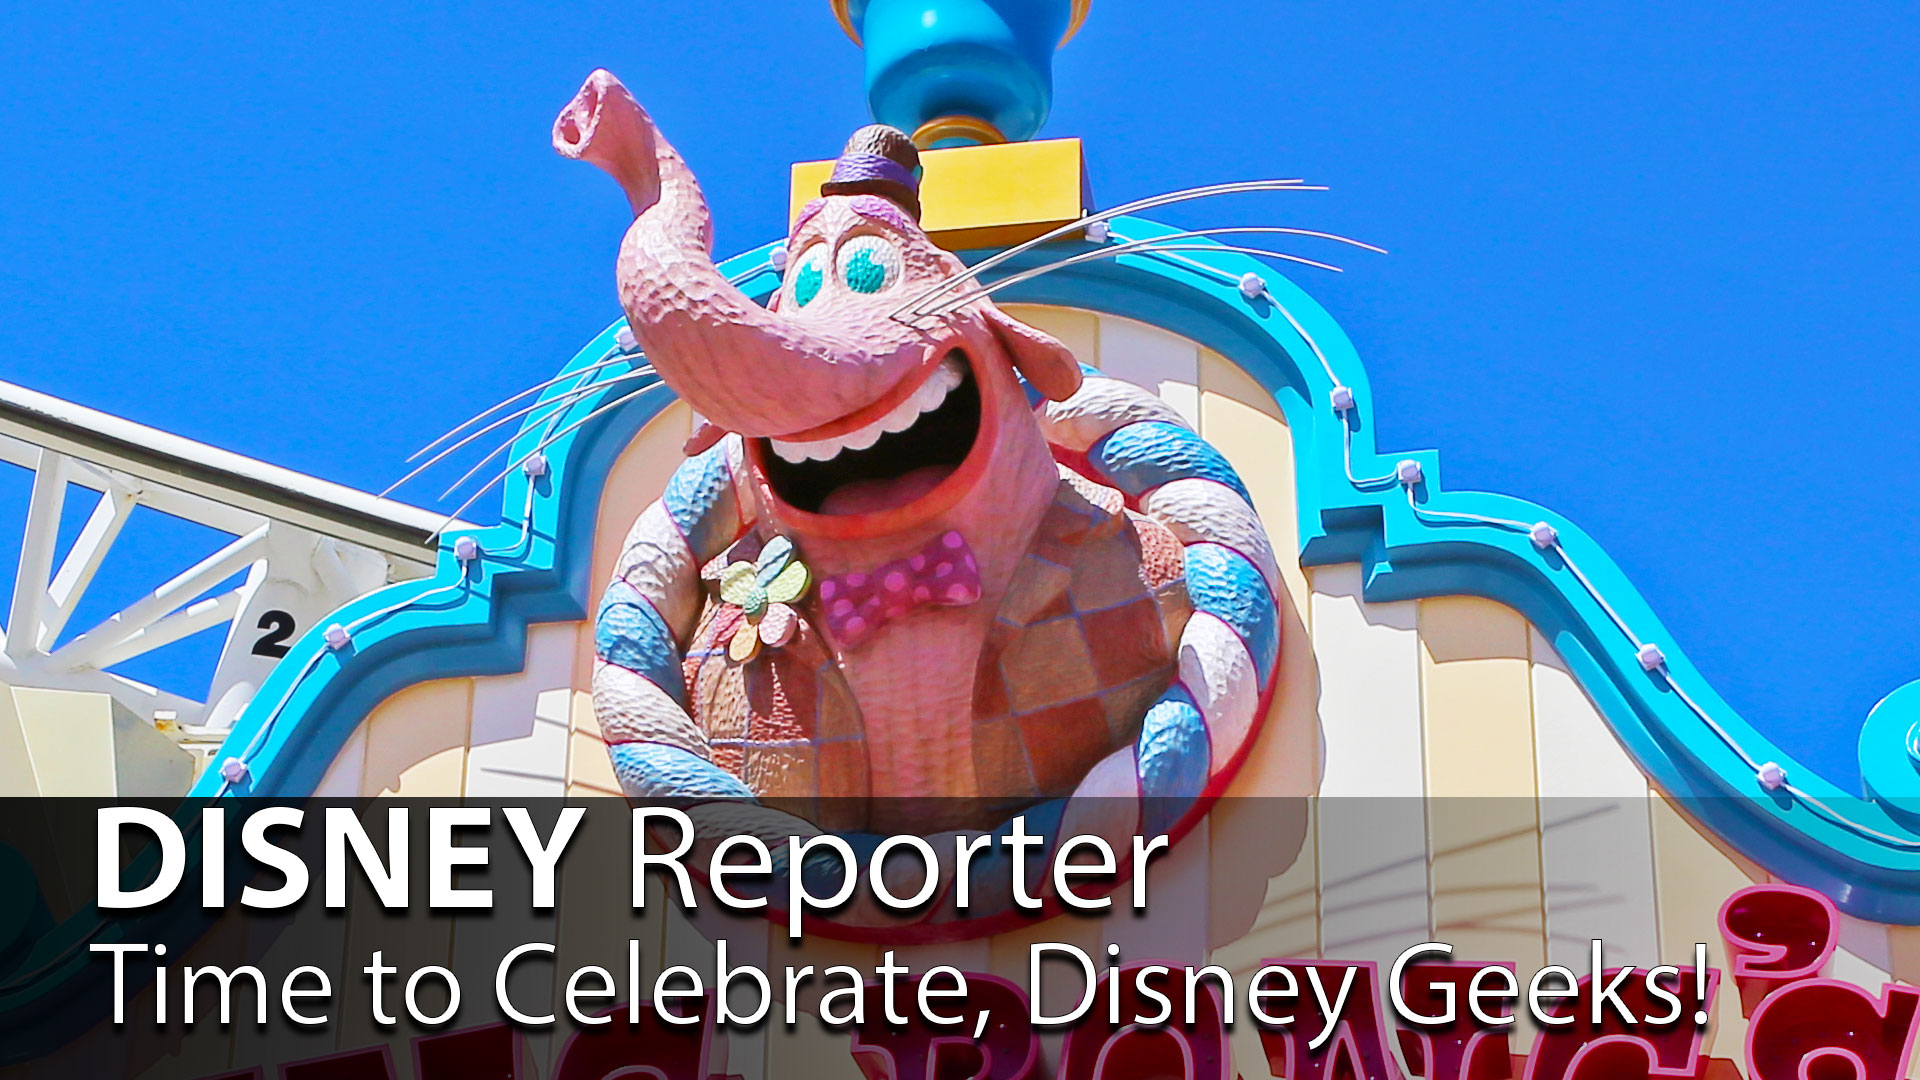 Time to Celebrate, Disney Geeks! - DISNEY Reporter